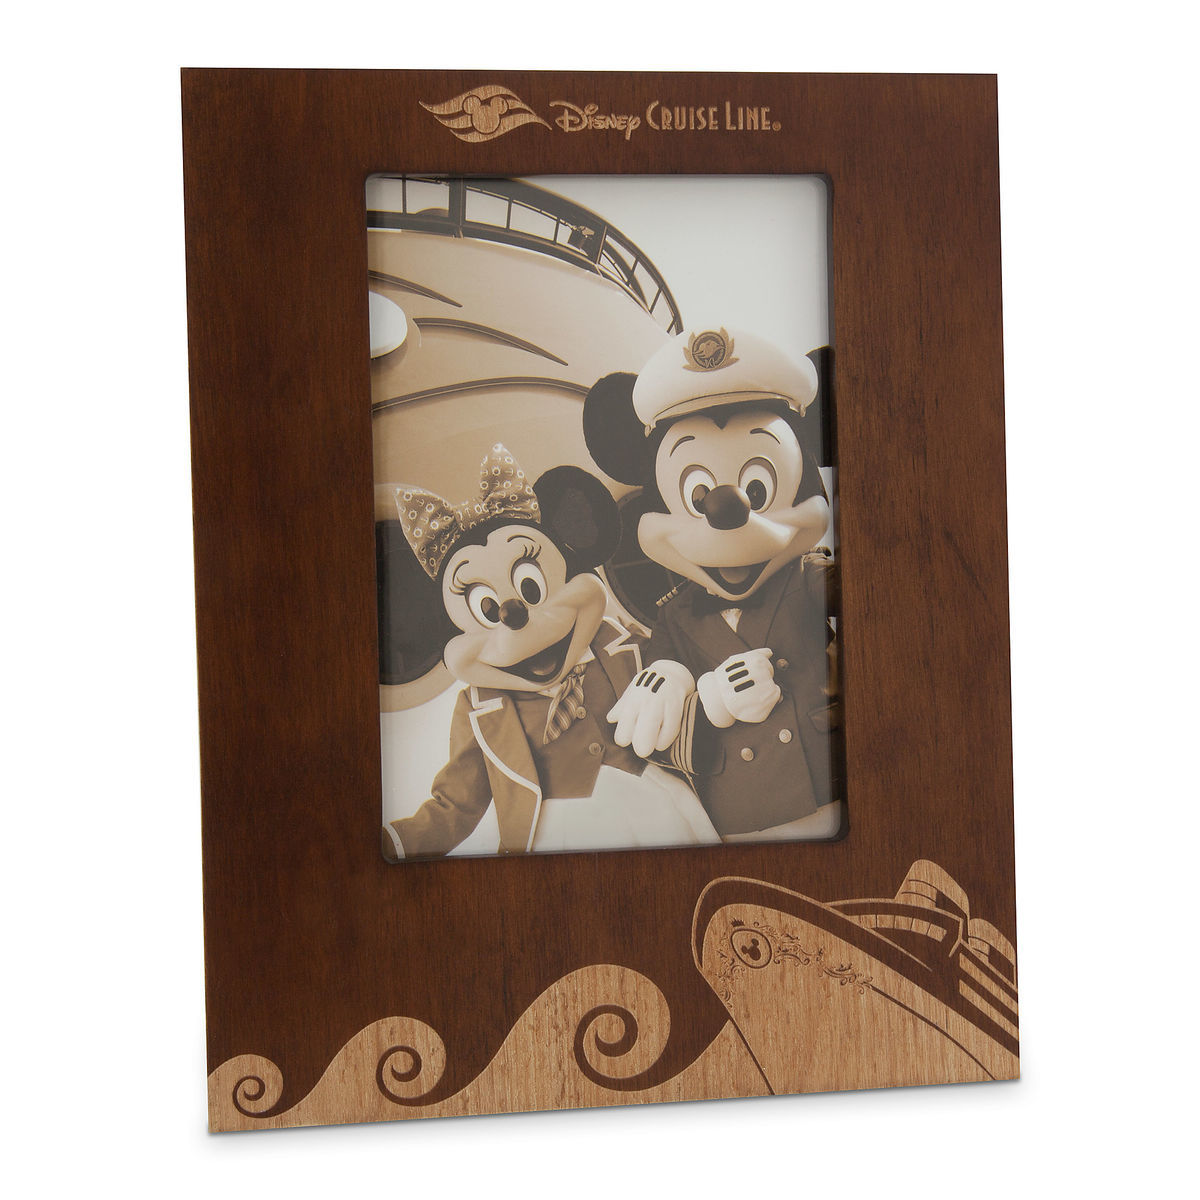 Disney Cruise Line Wood Photo Frame 5 X 7 Shopdisney